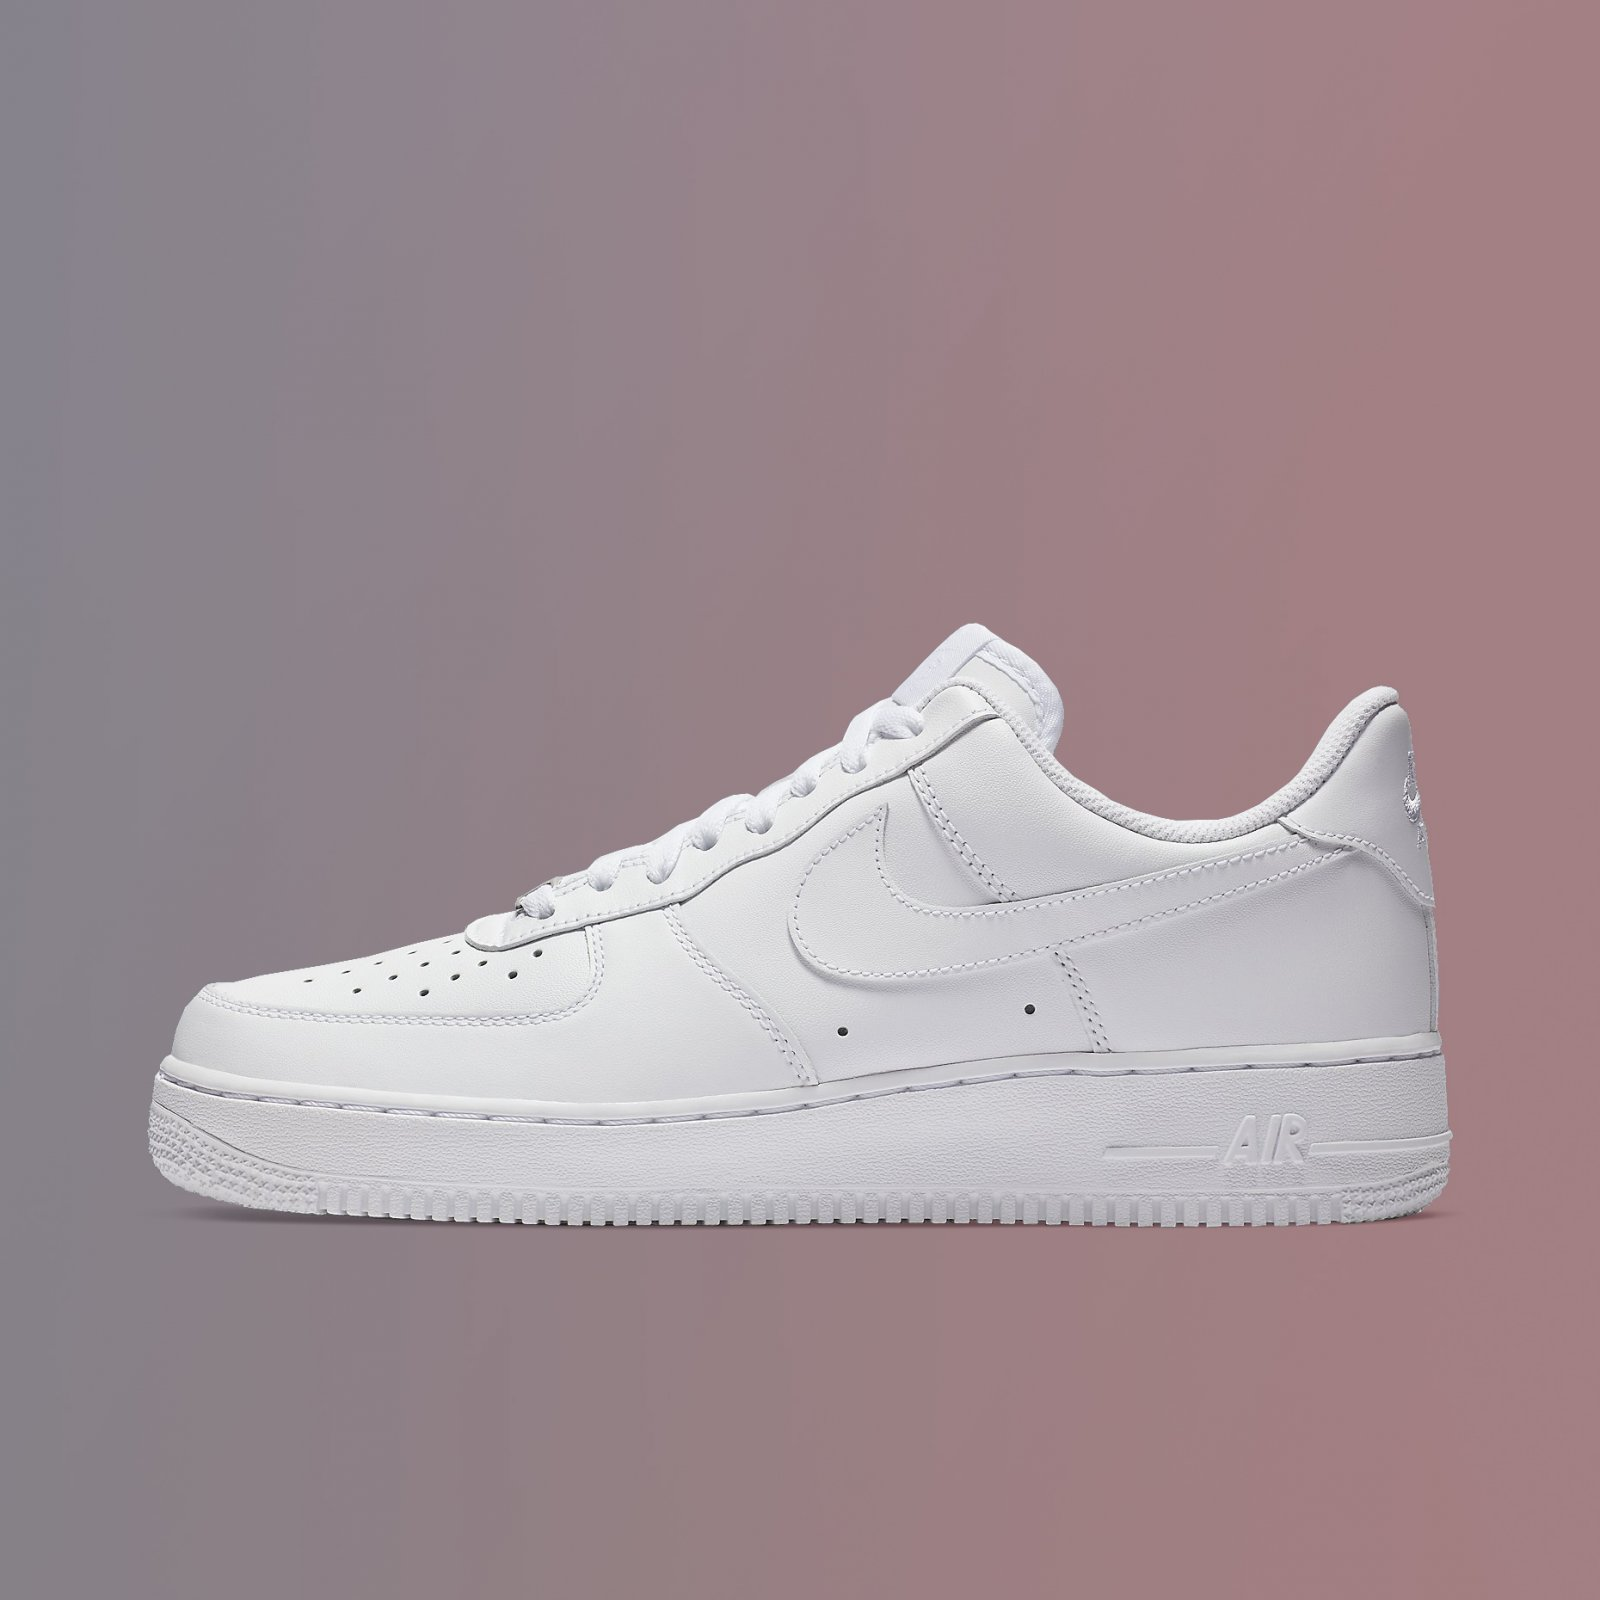 a7bd6c98e8c55 Details about Nike Women's Air Force 1 '07 White on White Casual Shoe 2018 WMNS  AF1 315115-112